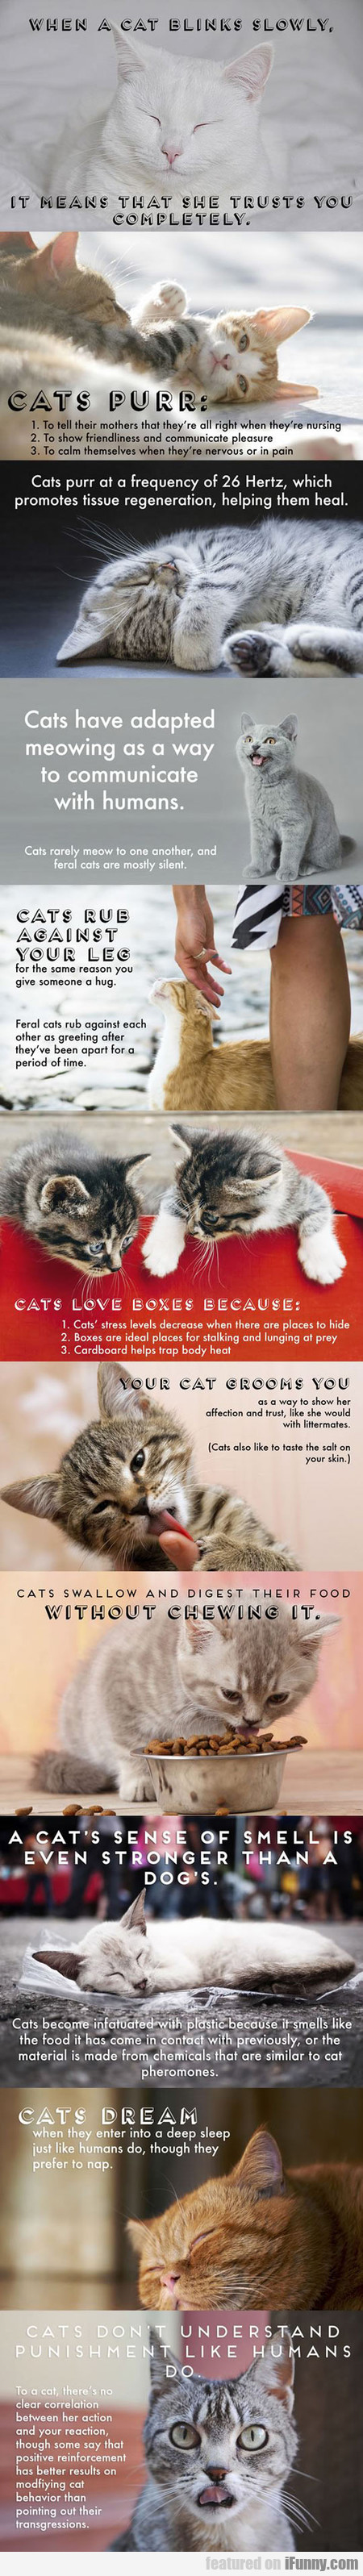 Some Facts About Cats